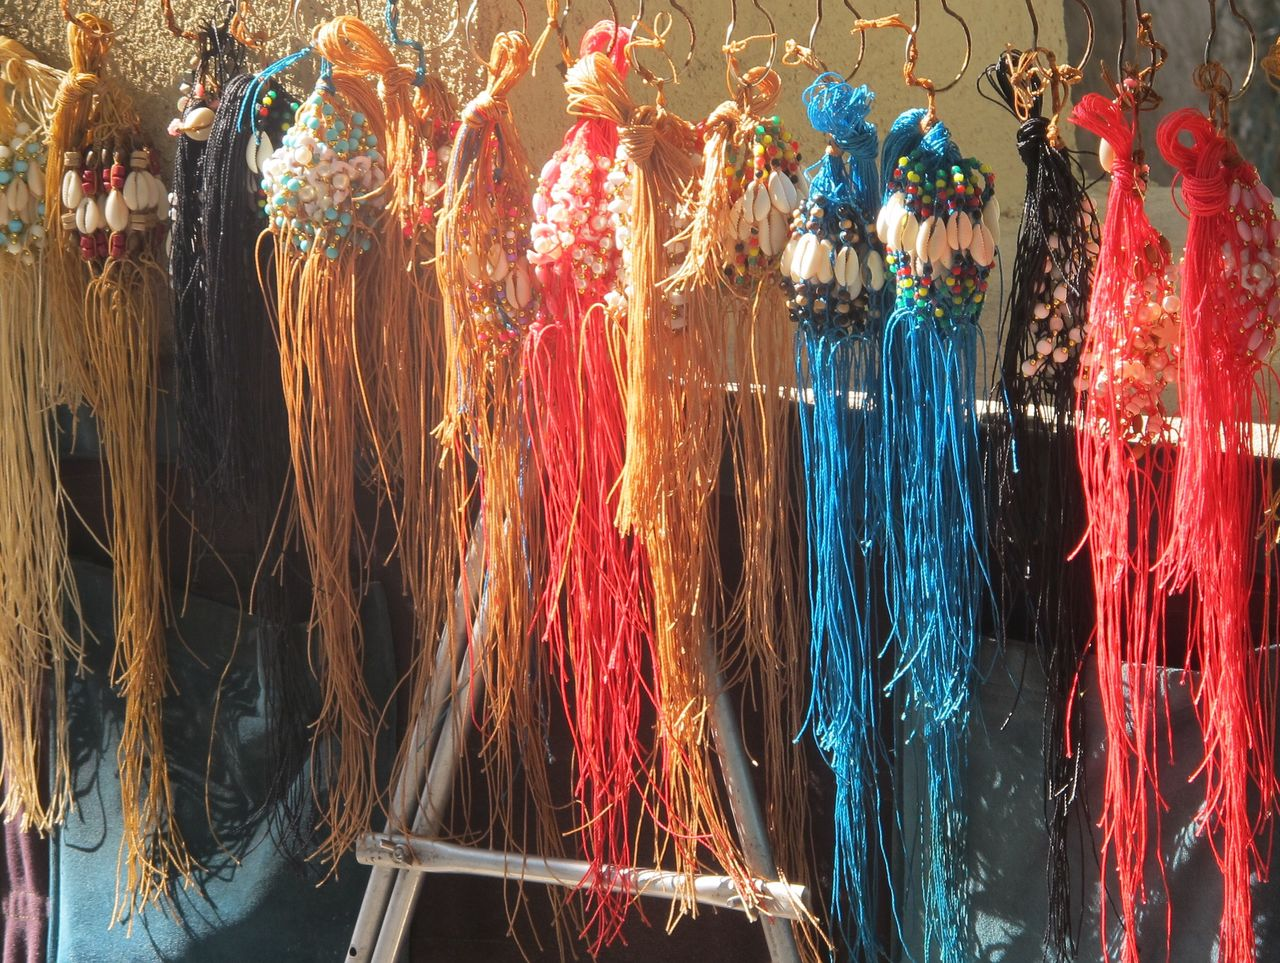 choice, retail, multi colored, no people, for sale, variation, indoors, hanging, art and craft, collection, large group of objects, shopping, sale, store, creativity, day, business, textile, market, group, retail display, consumerism, festival